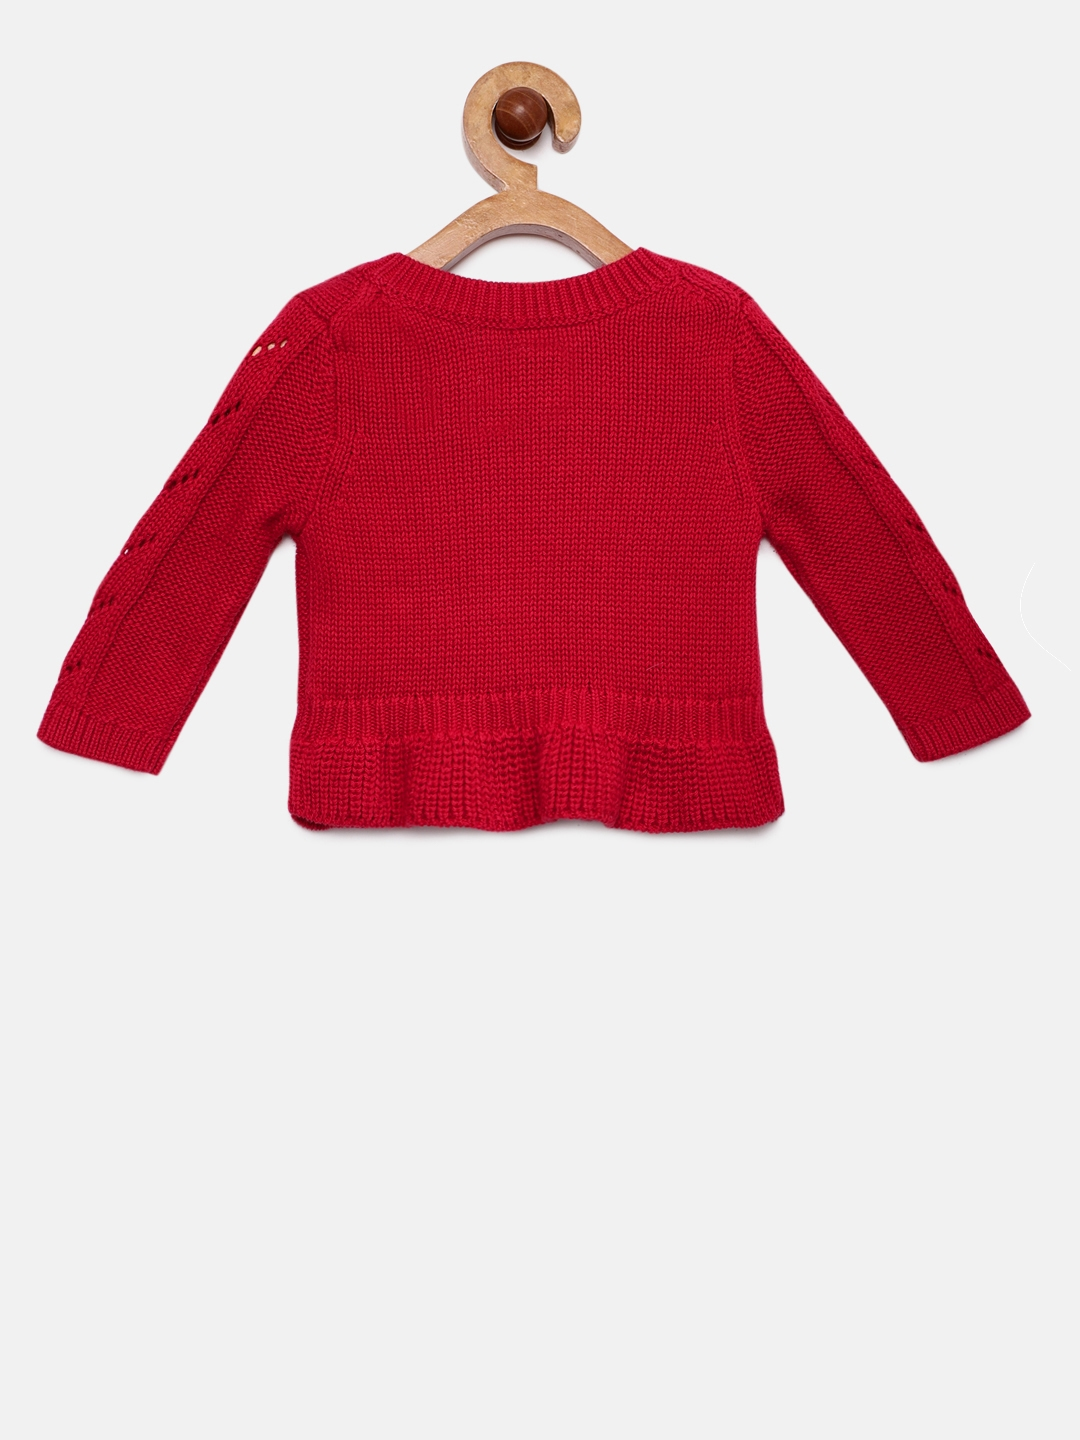 eae440d9d Buy GAP Baby Girls  Cable Knit Peplum Sweater - Sweaters for Girls ...